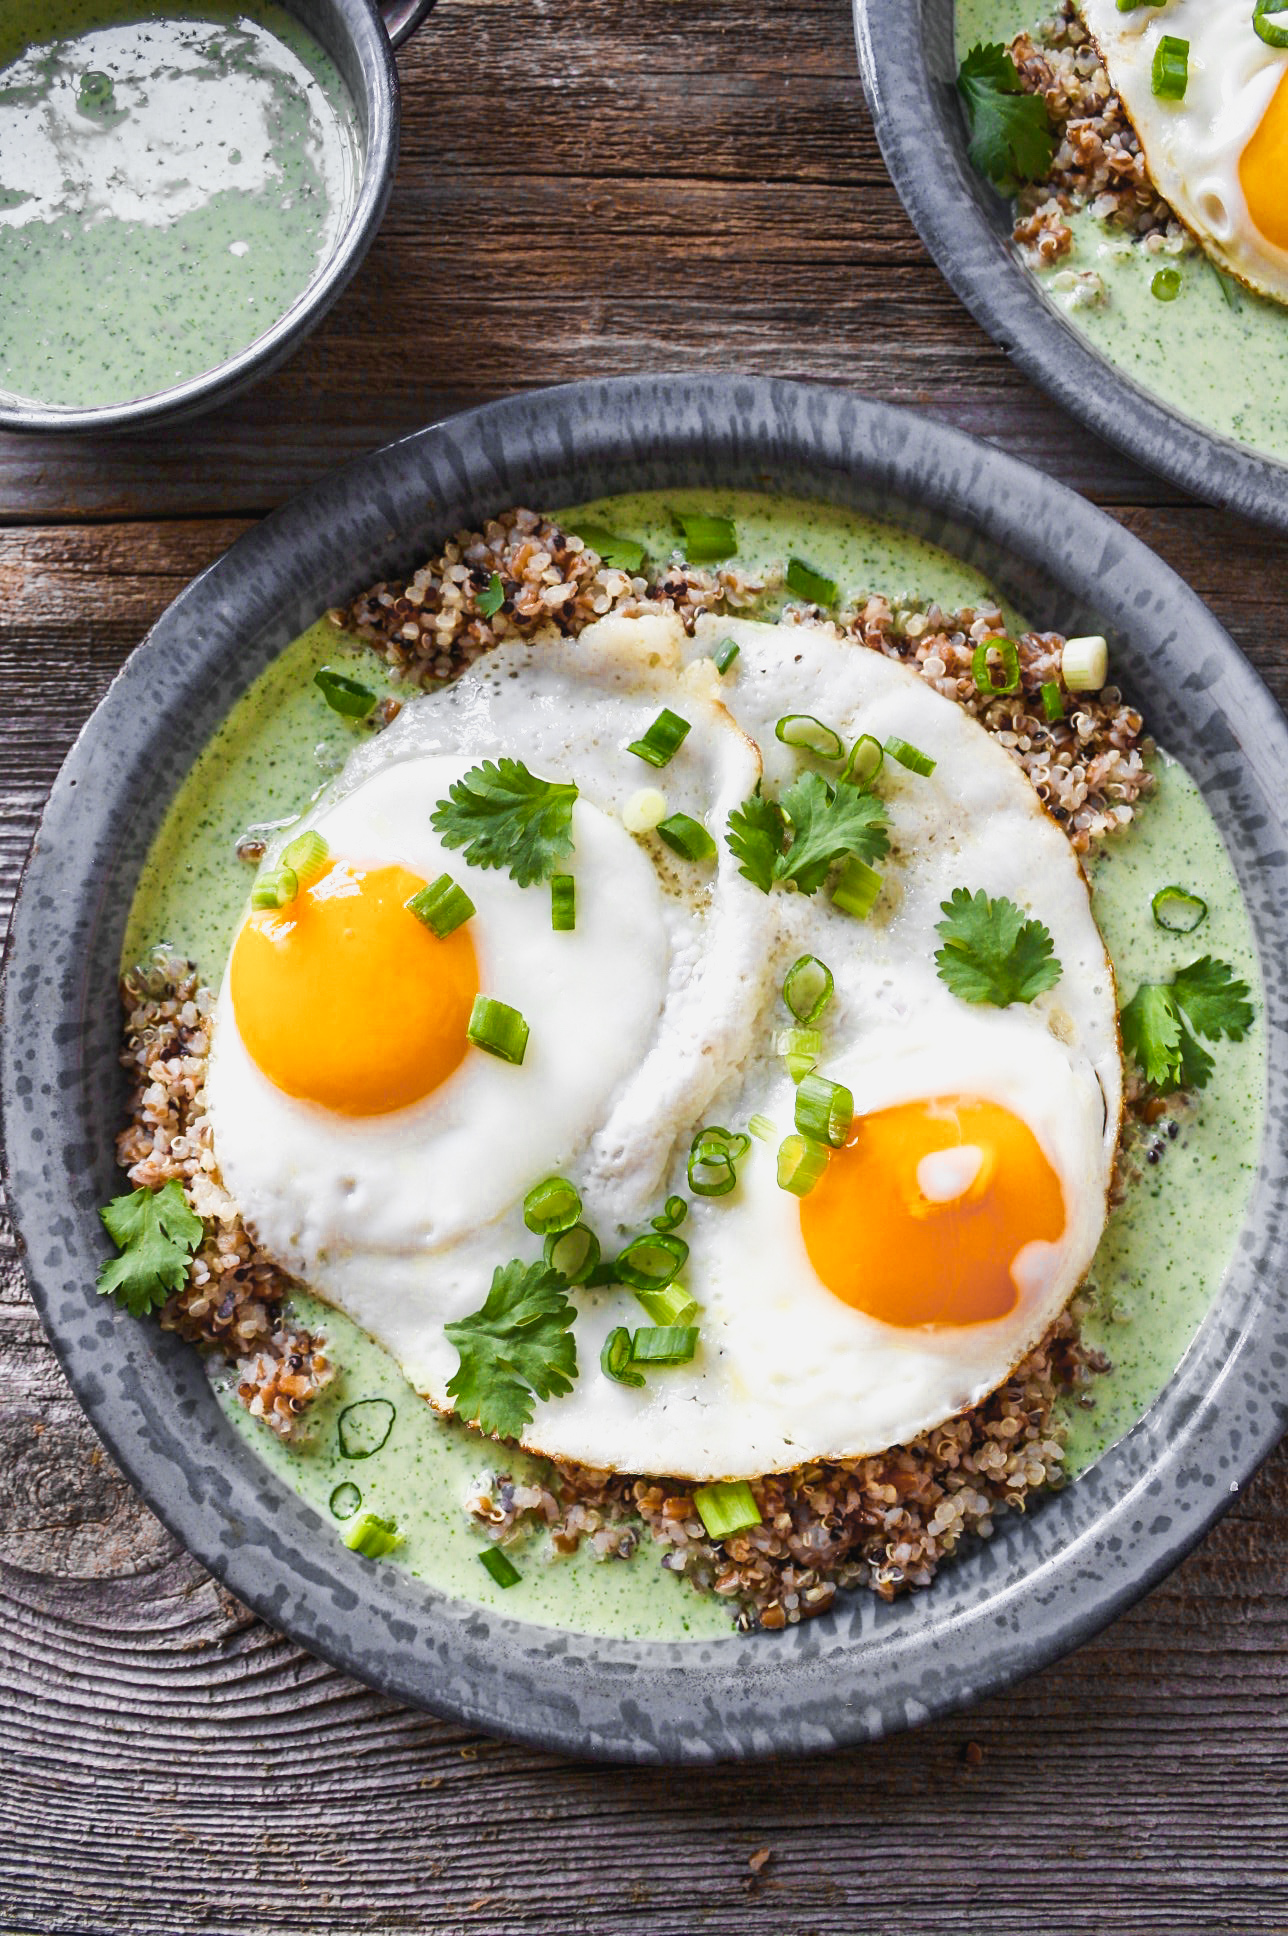 A gray metal plate with green sauce, grains, and sunny side up eggs, set on top of worn wood slabs.